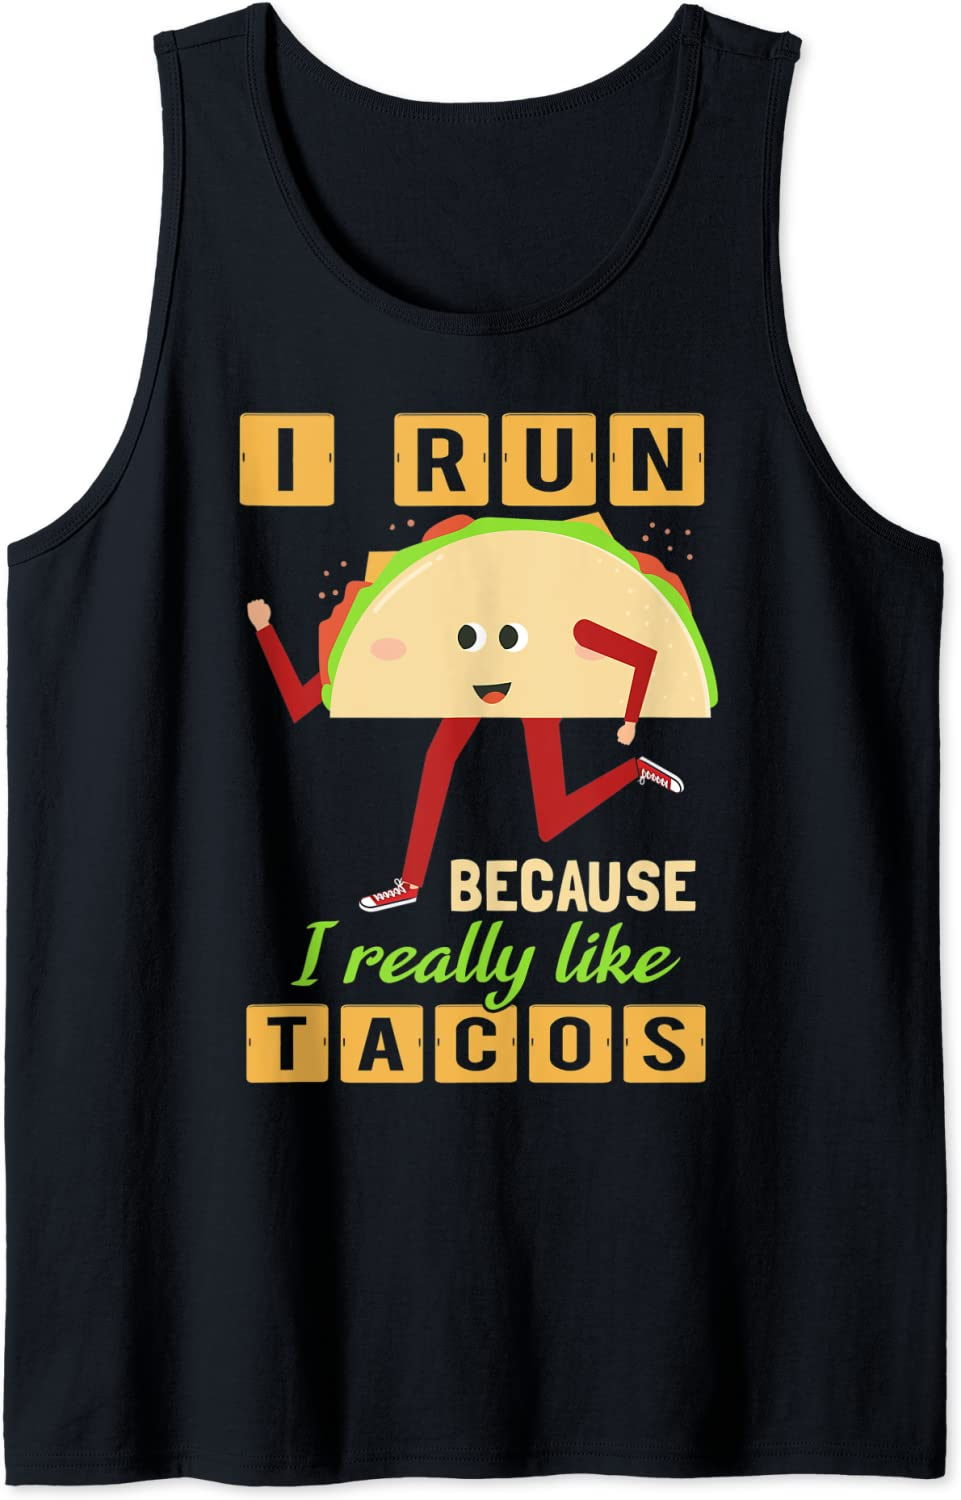 I Run Because I Really Like Tacos Funny Mexican Food Running Tank Top